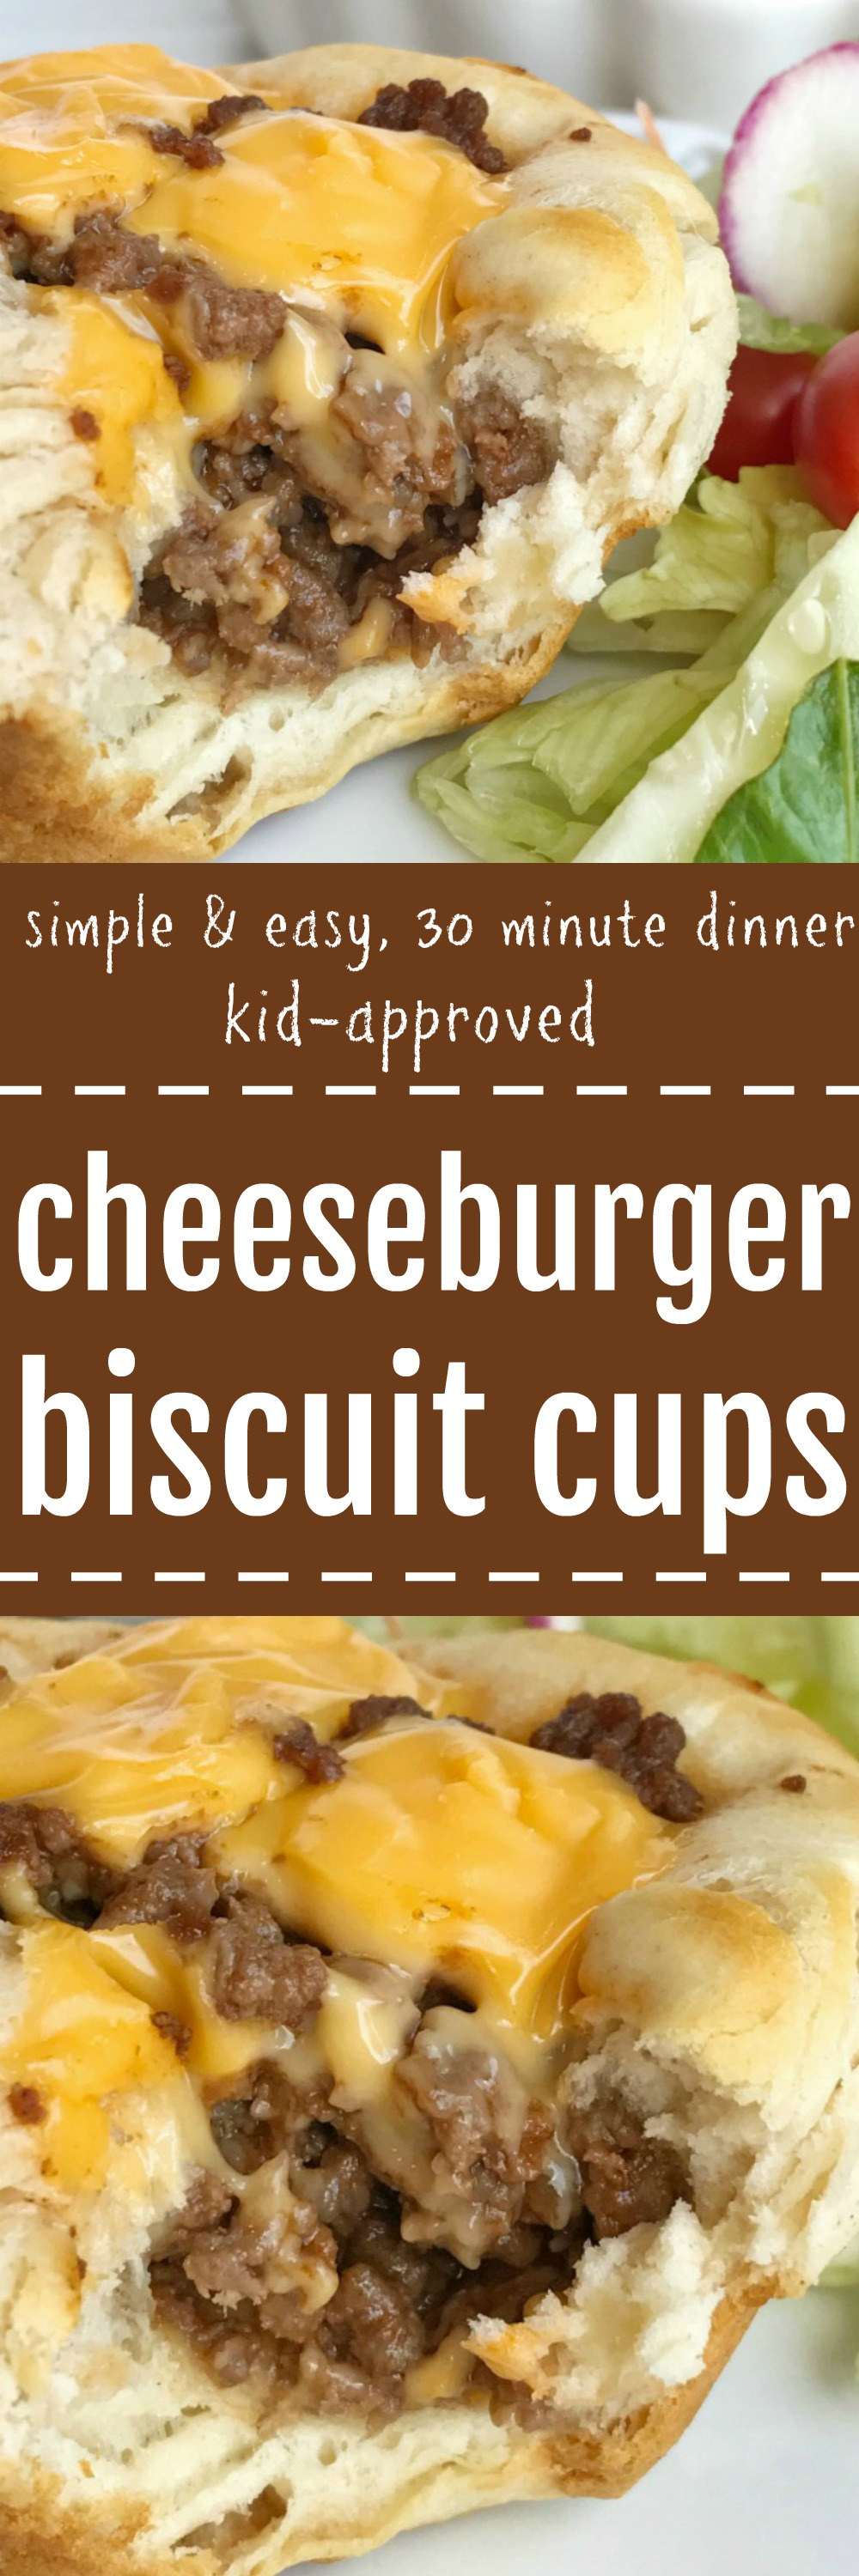 Cheeseburger Biscuit Cups Together As Family